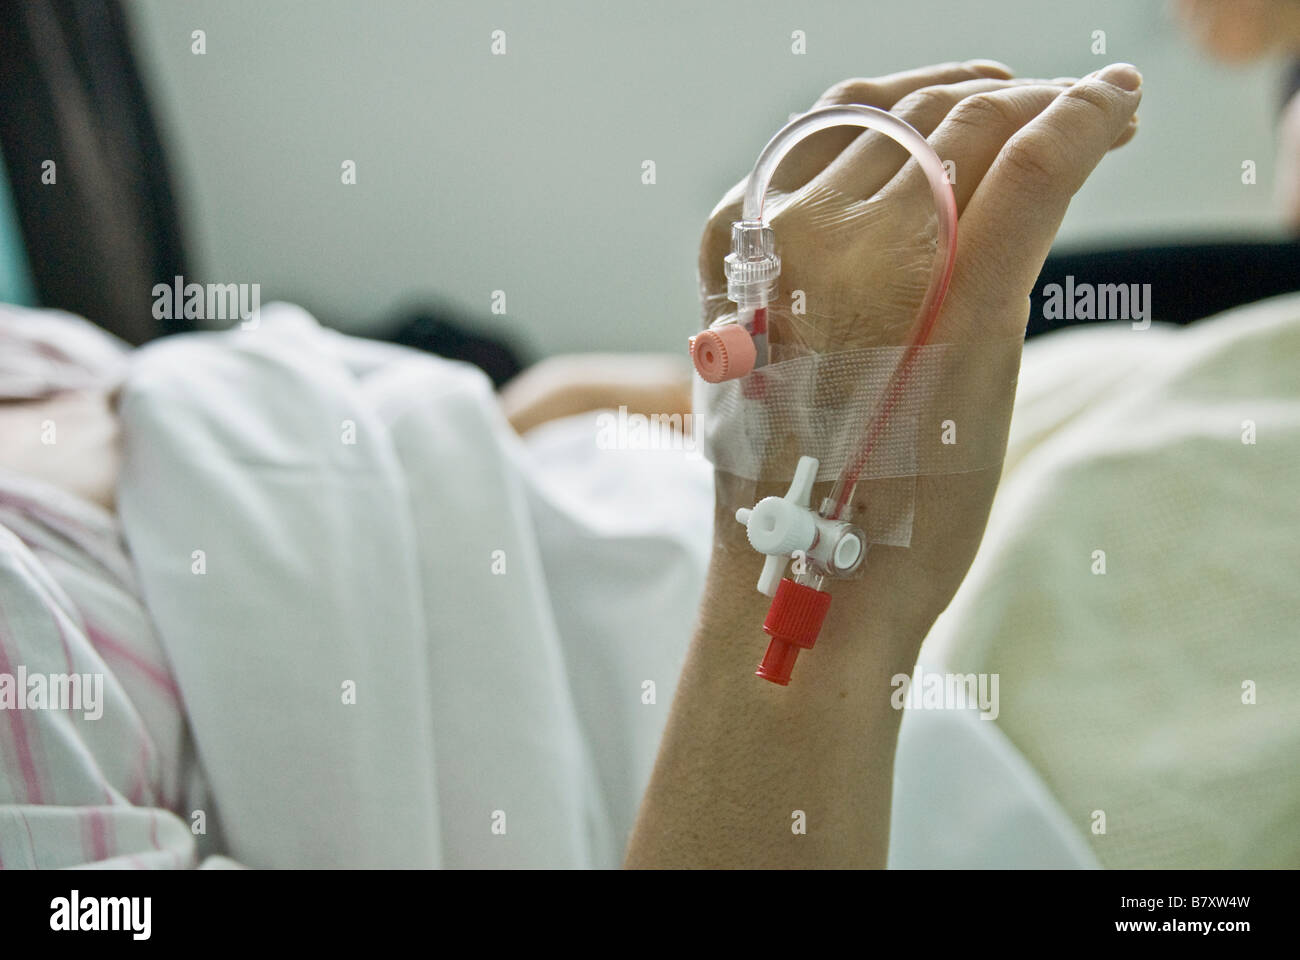 A PATIENT HAND NEEDLE ON IT,READY TO BE TAKING BLOOD - Stock Image